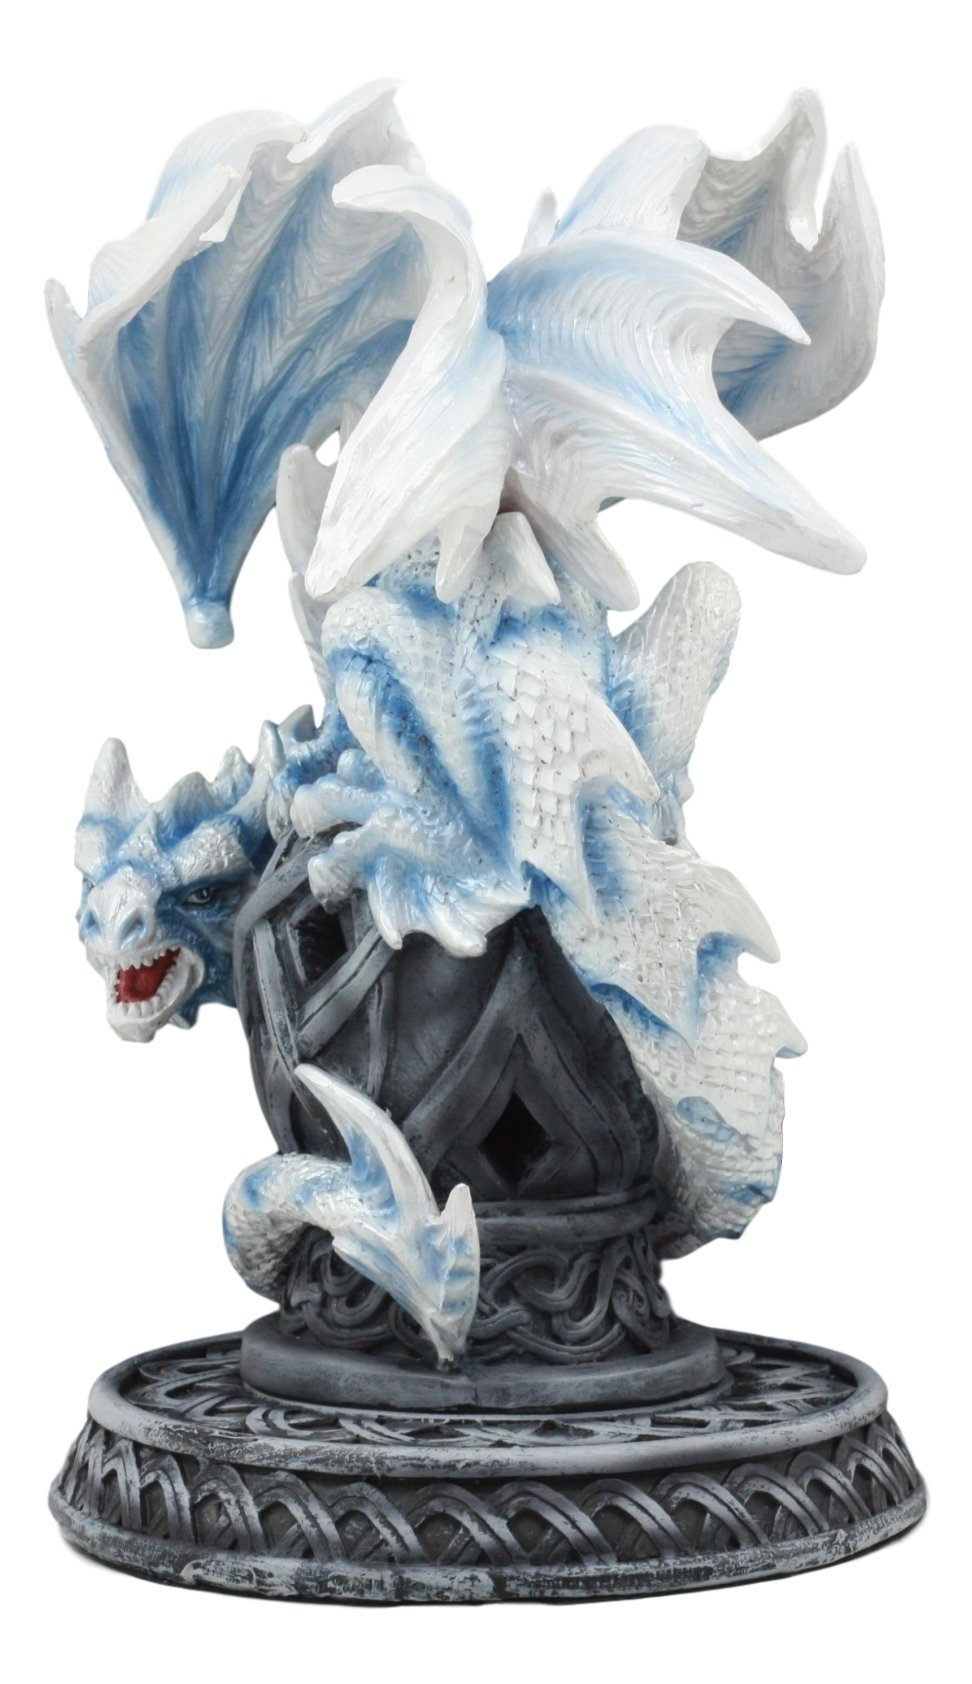 Ebros Guardian of Celtic Tomb White Icycle Dragon Backflow Cone Incense Holder Statue 8.5''Tall Fantasy Icelandic Dragon LED Tea Light Candle Holder Figurine by Ebros Gift (Image #3)